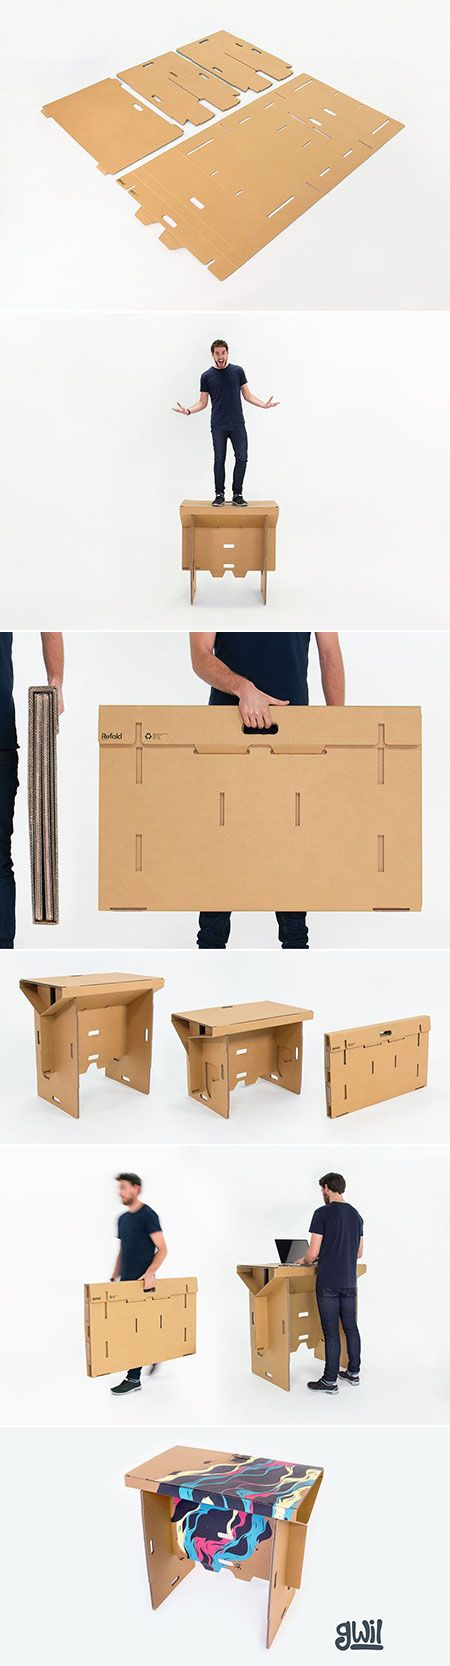 Most of us already know the many benefits of standing desks, but buying new office furniture can get expensive. These standing desks by Refold are an ideal solution, as they're lightweight and portable so they can be assembled in just a few seconds and then tucked away when no longer in use. Refold desks are 100 percent recyclable, weigh just 6.5 kg (14 lbs), and fold up into a self-contained carry case.